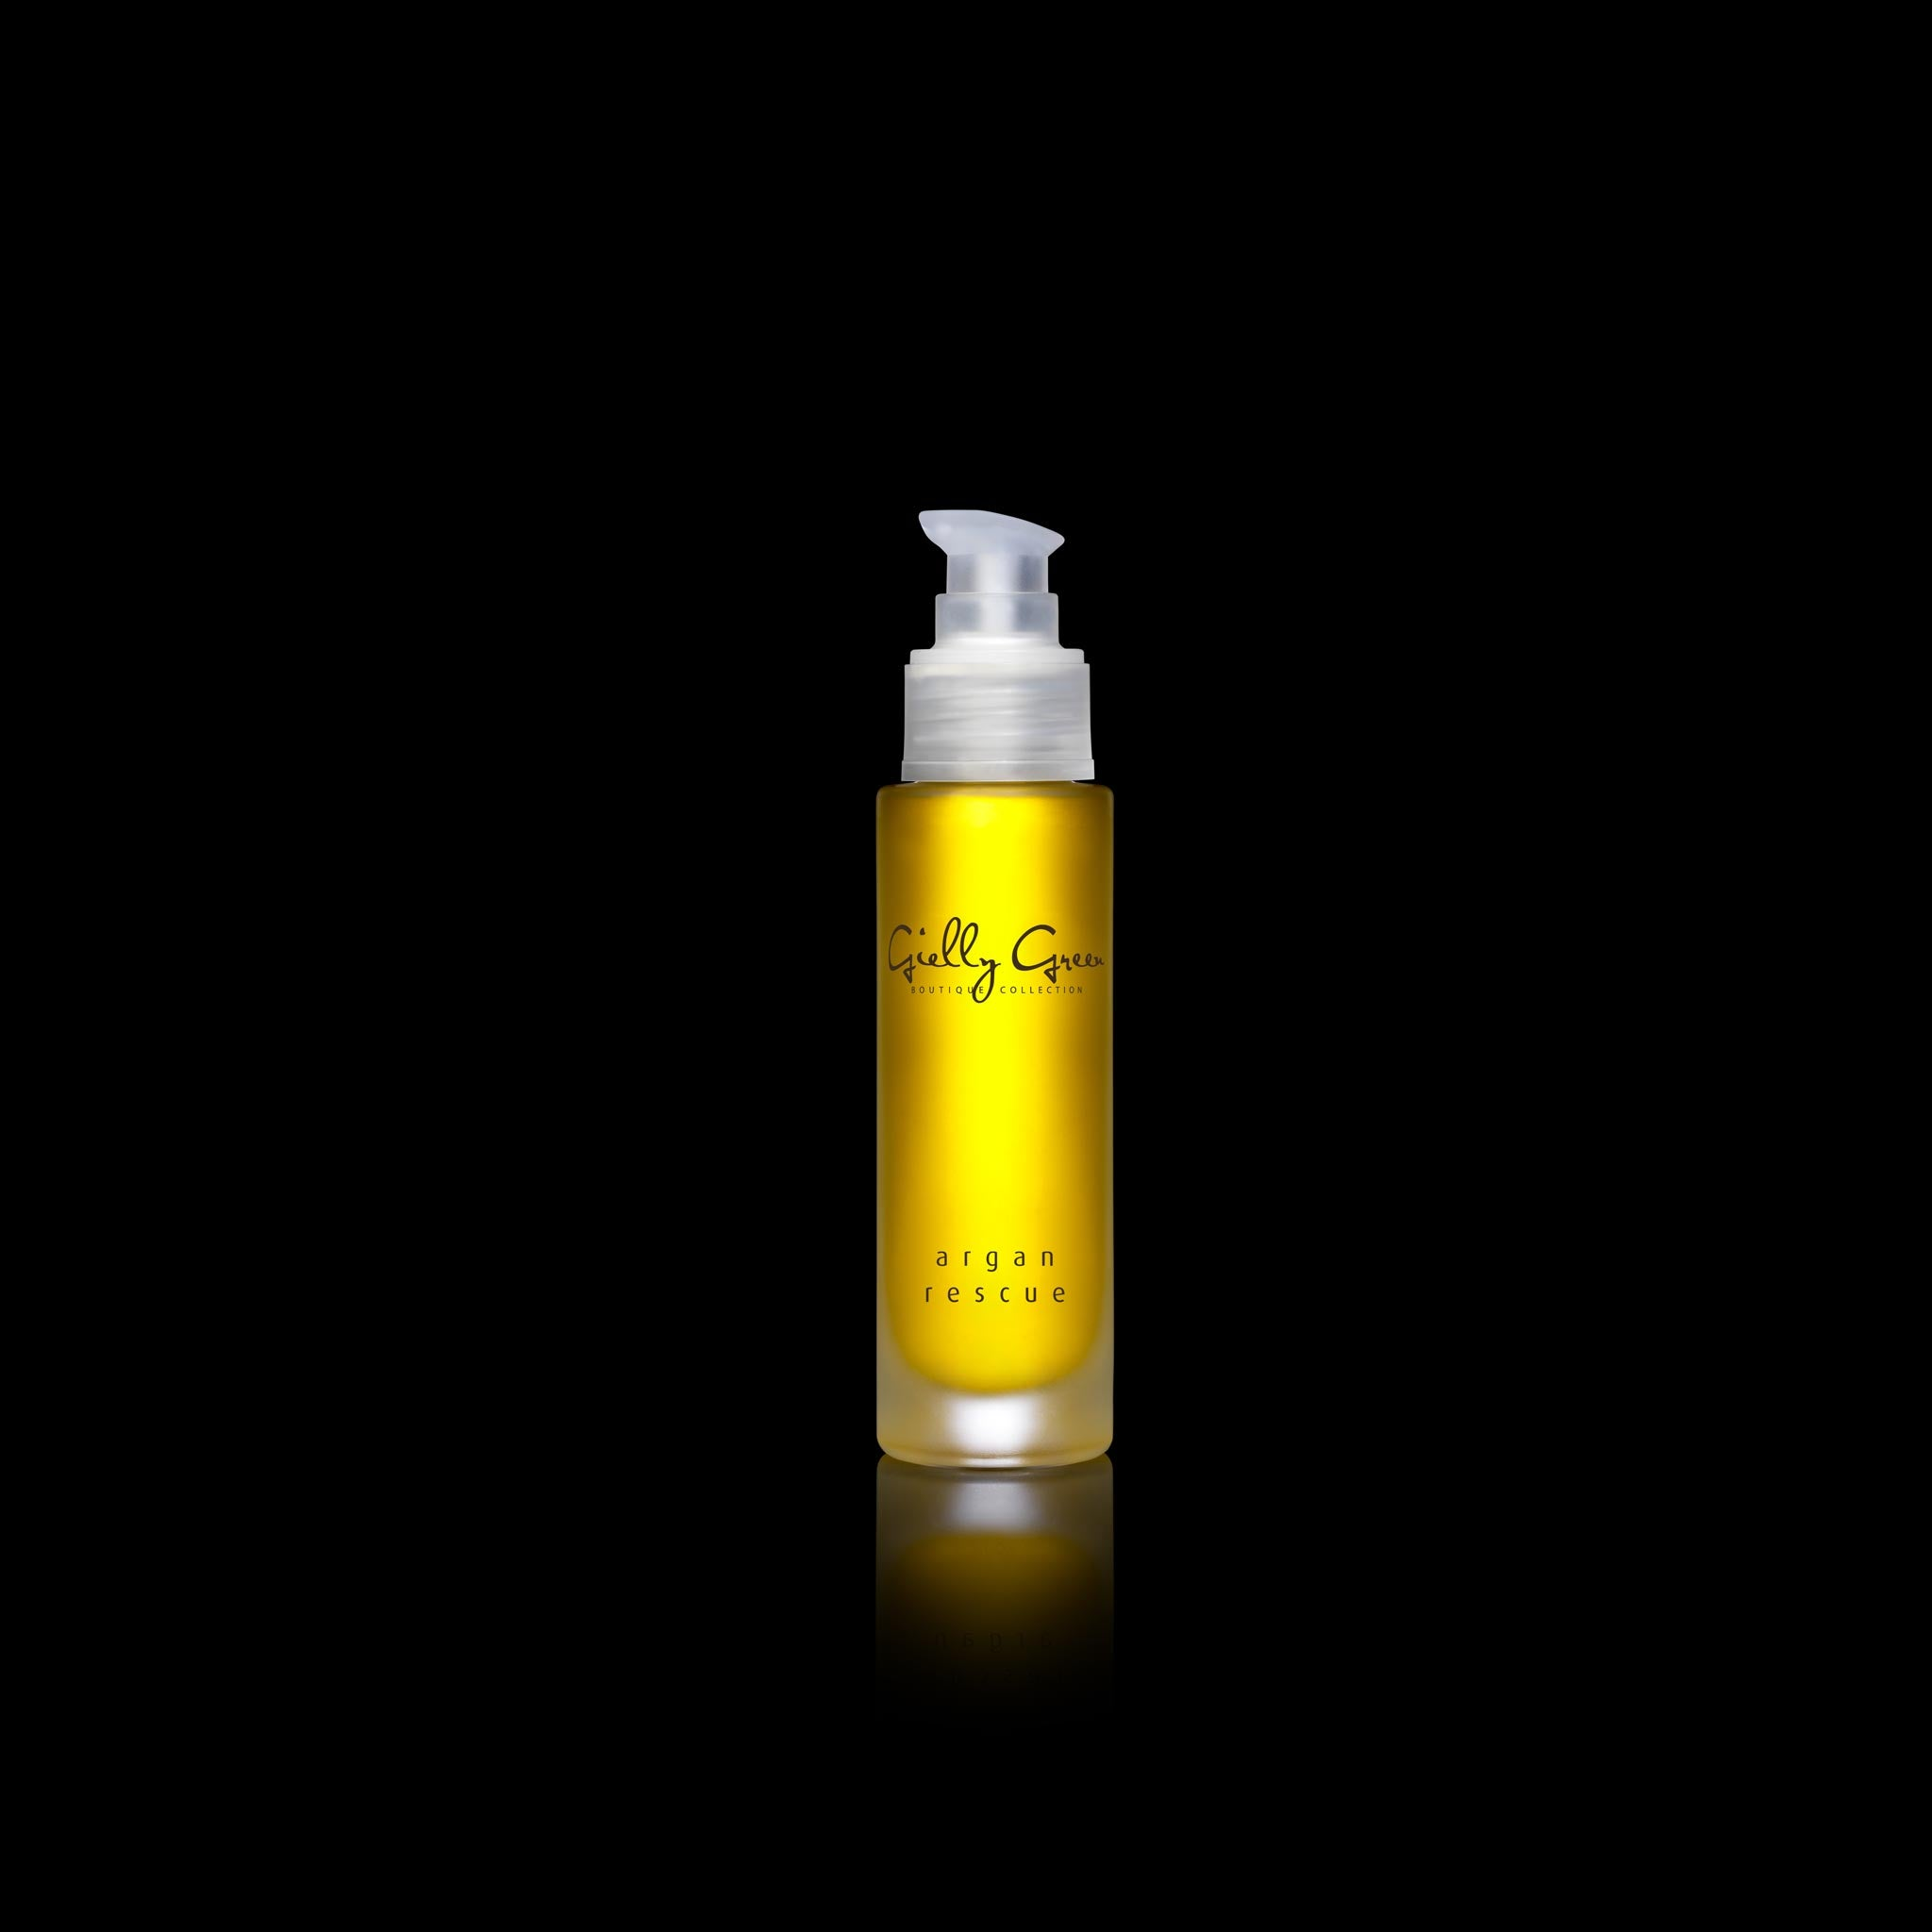 Argan Rescue